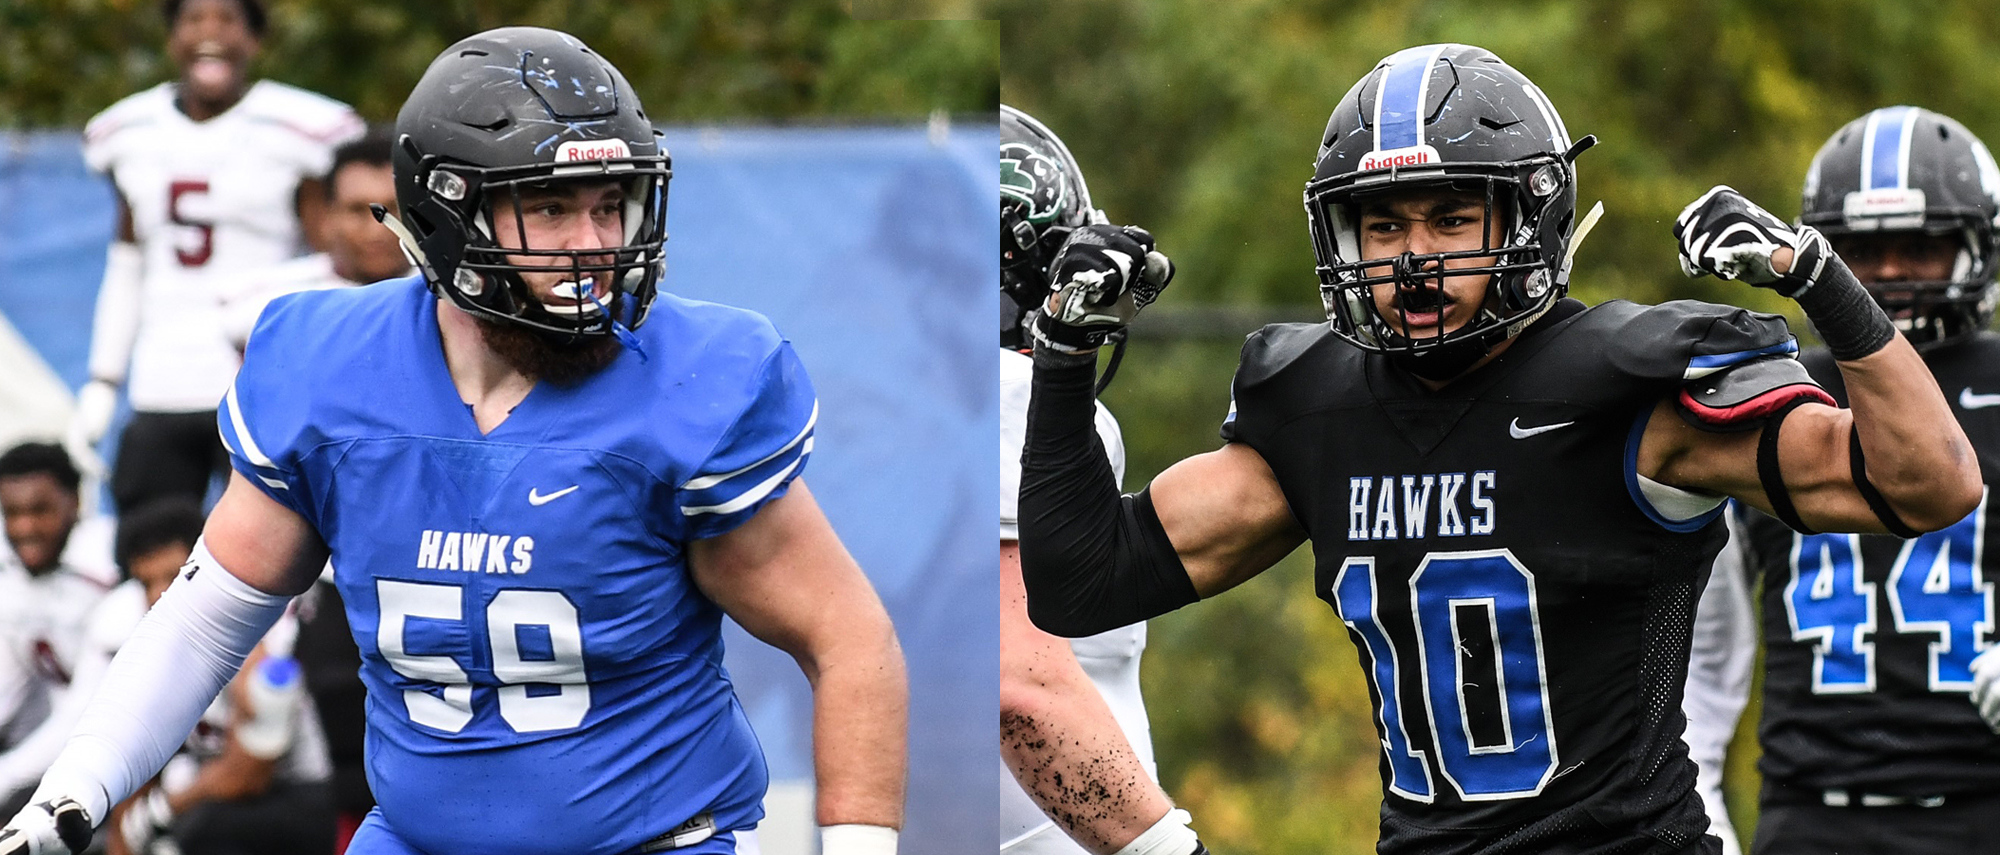 Football Season Preview: Hawks Ready to Kickoff 2019 Campaign